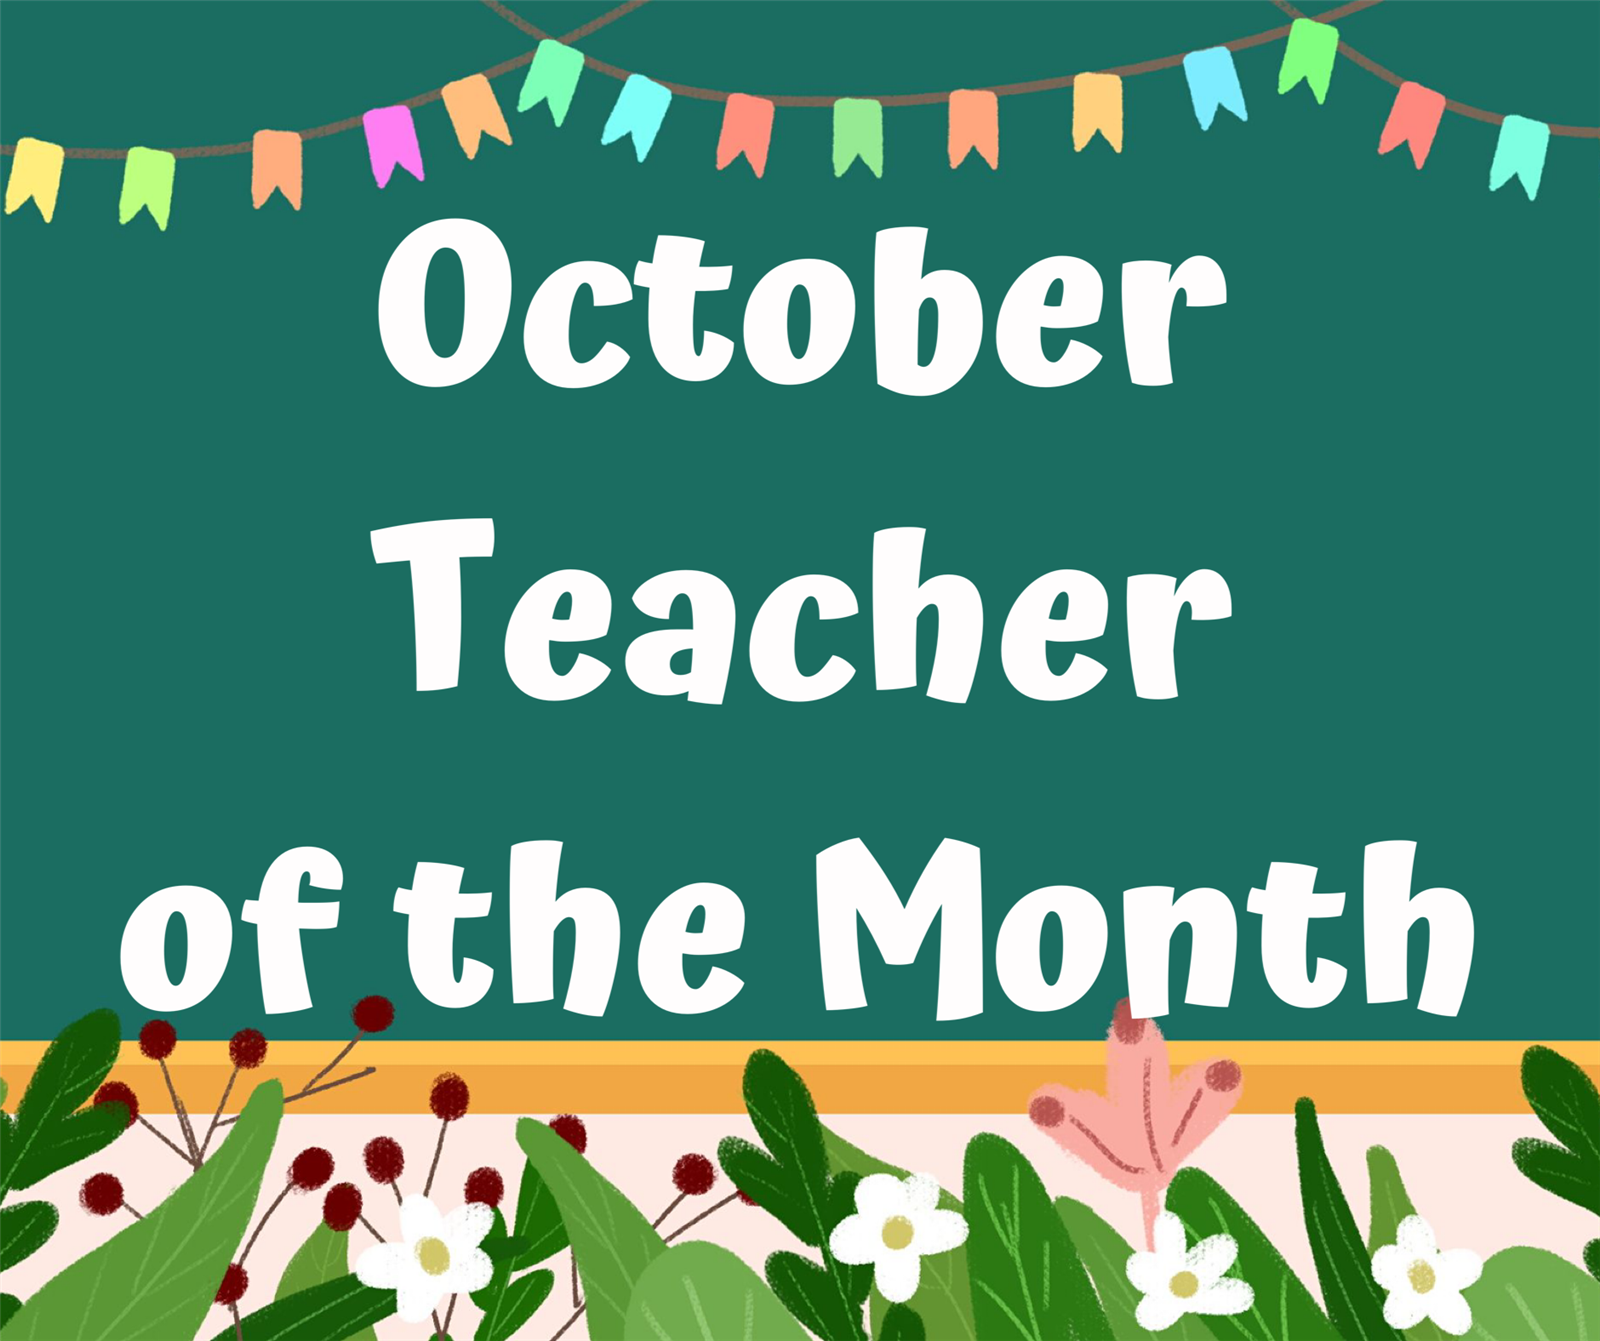 Green chalkboard with colorful pennate at the top and October Teacher of the Month in the middle